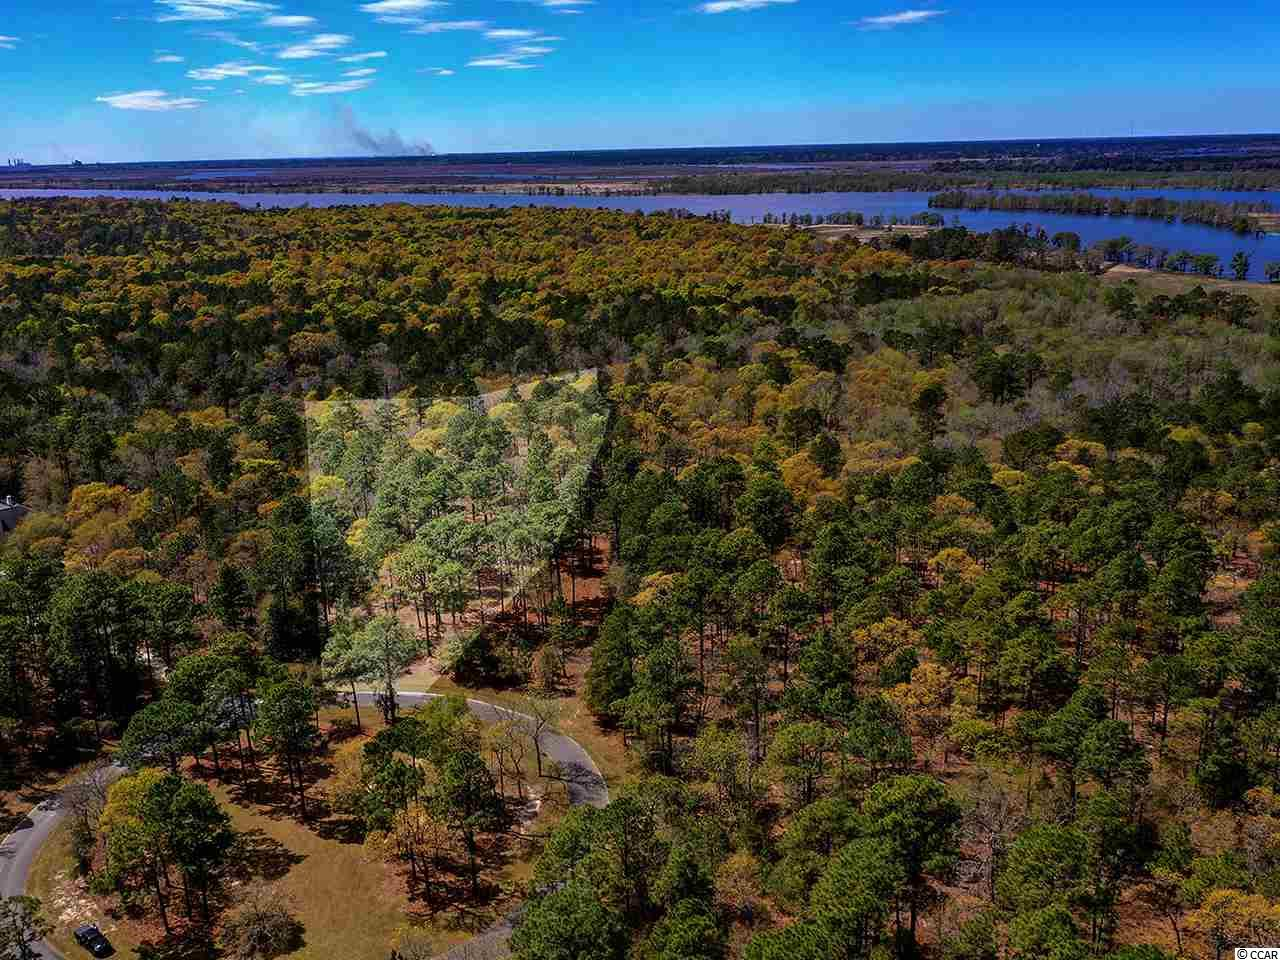 Over 8.50  acres in the esteemed Prince George Community. With the purchase of a homesite on the Riverside of Prince George, you also acquire a DEEDED BOAT SLIP at the private marina just steps from your property! Just south of Pawleys Island the Prince George community is a historically significant tract of land offering 150 unique homesites that stretch from the Atlantic Ocean to the Waccamaw River (Intracoastal Waterway). The property owners of Prince George are dedicated to preserving the natural beauty and serenity of this neighborhood. The riverside amenities include a clubhouse with sitting area, fireplace, kitchenette, and marina with your own boat slip. The oceanside amenities include a clubhouse featuring a swimming pool, hot tub, tennis courts, basketball courts, playground and private beach access.